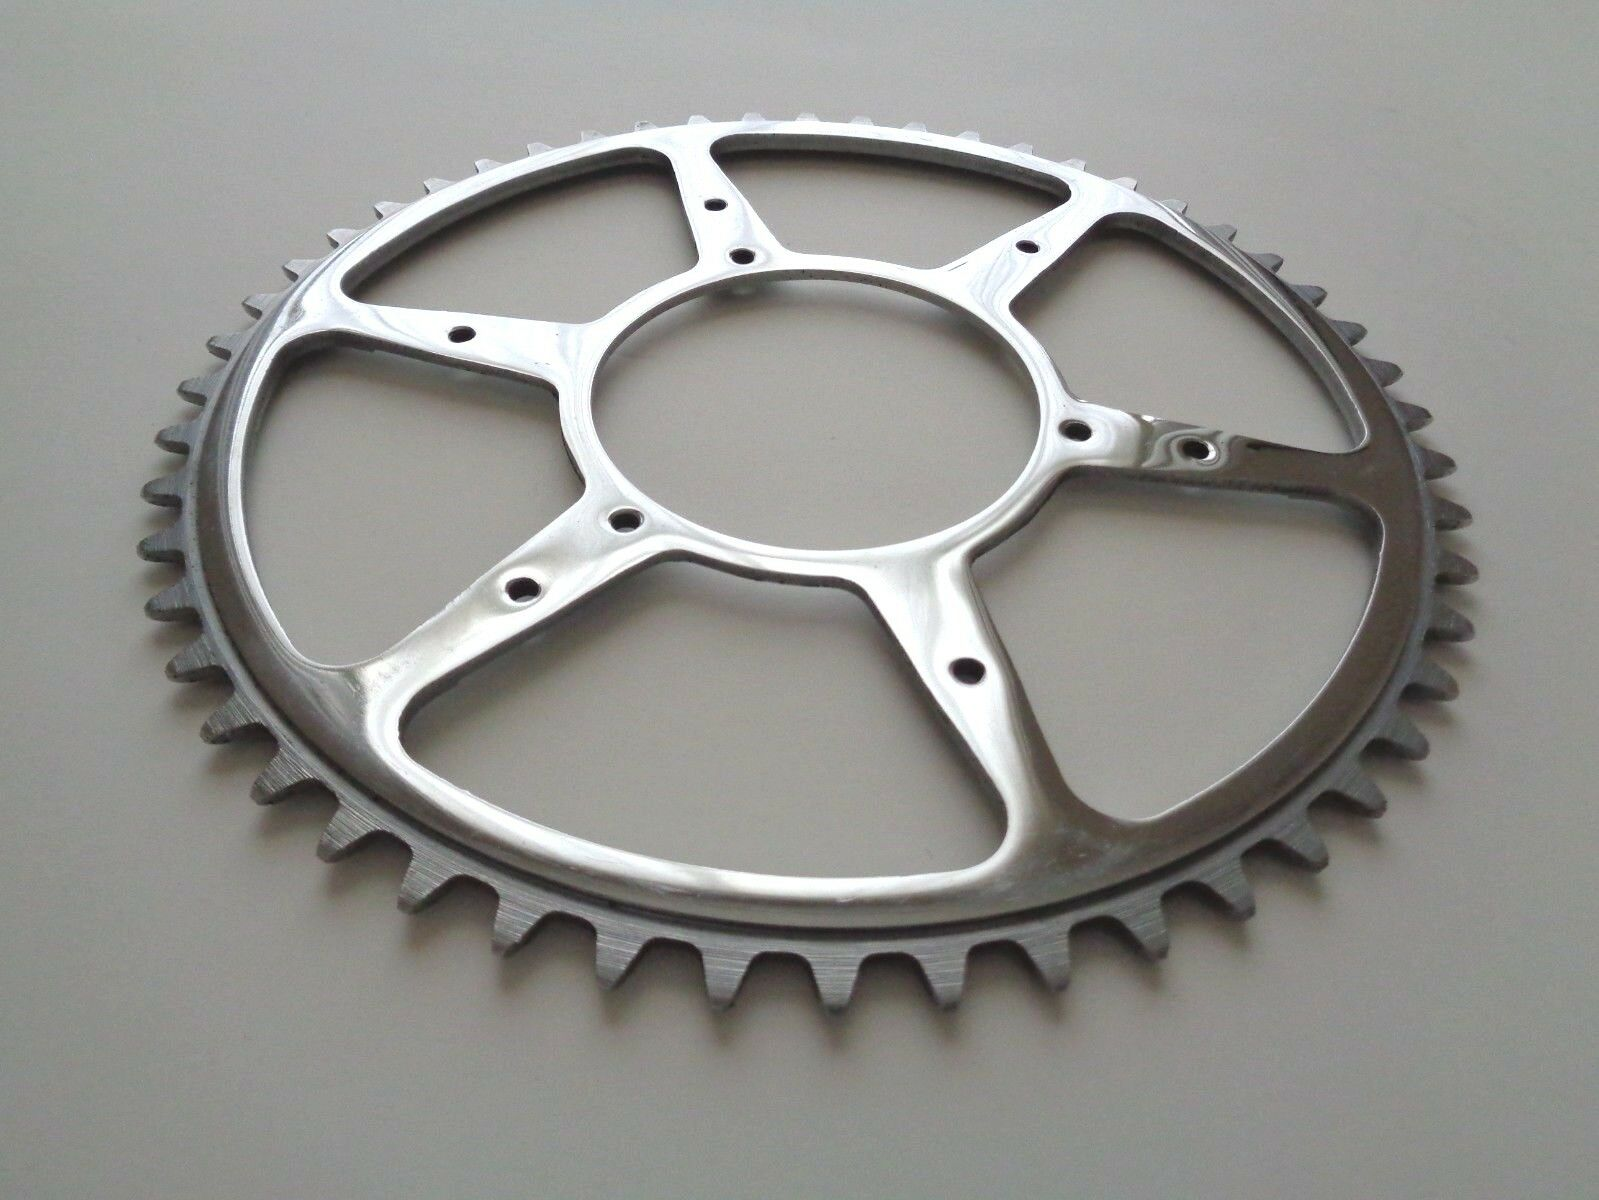 NOS Vintage 1950s Williams 52T 1 8  double adapter steel chainring